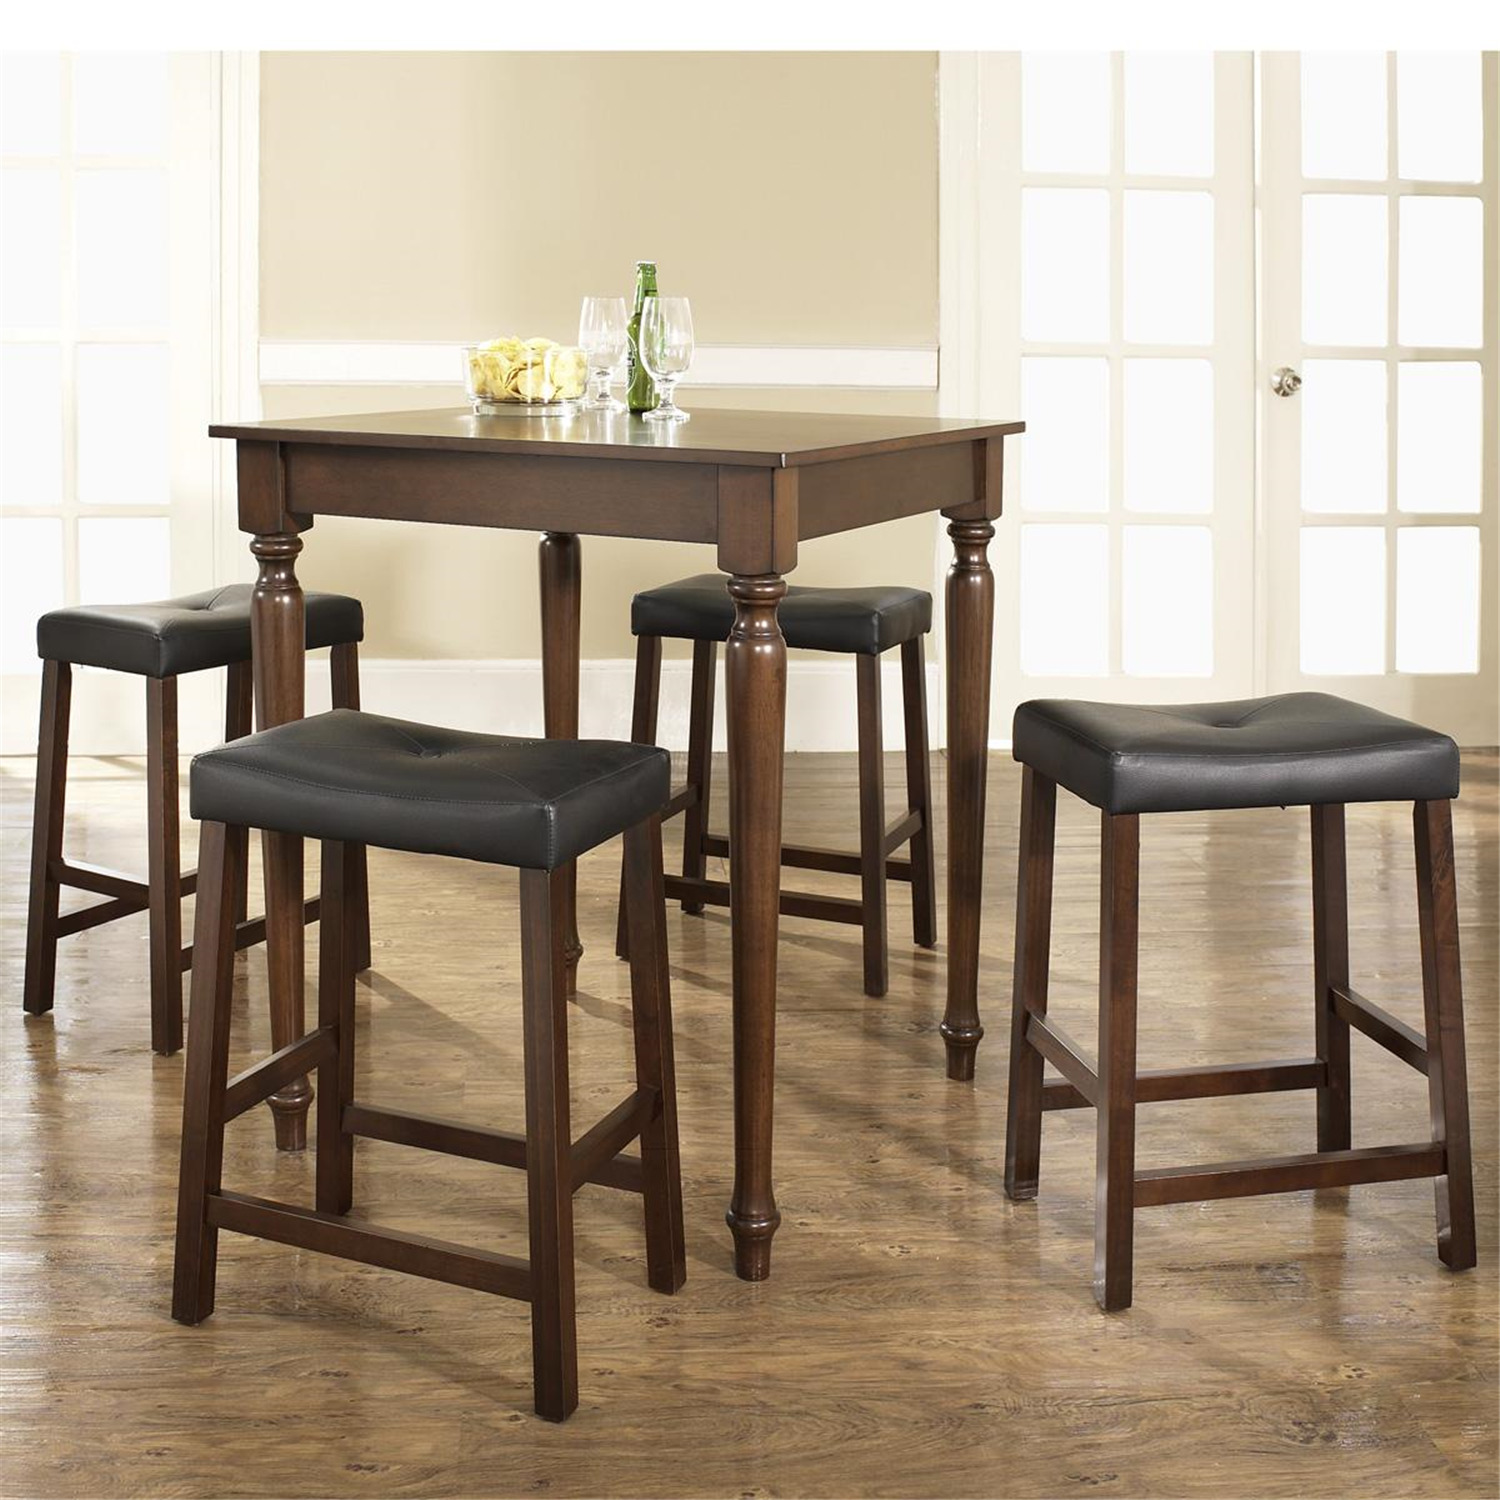 Pub Dinette Sets 5 Piece: Crosley 5 Piece Pub Dining Set With Turned Leg And